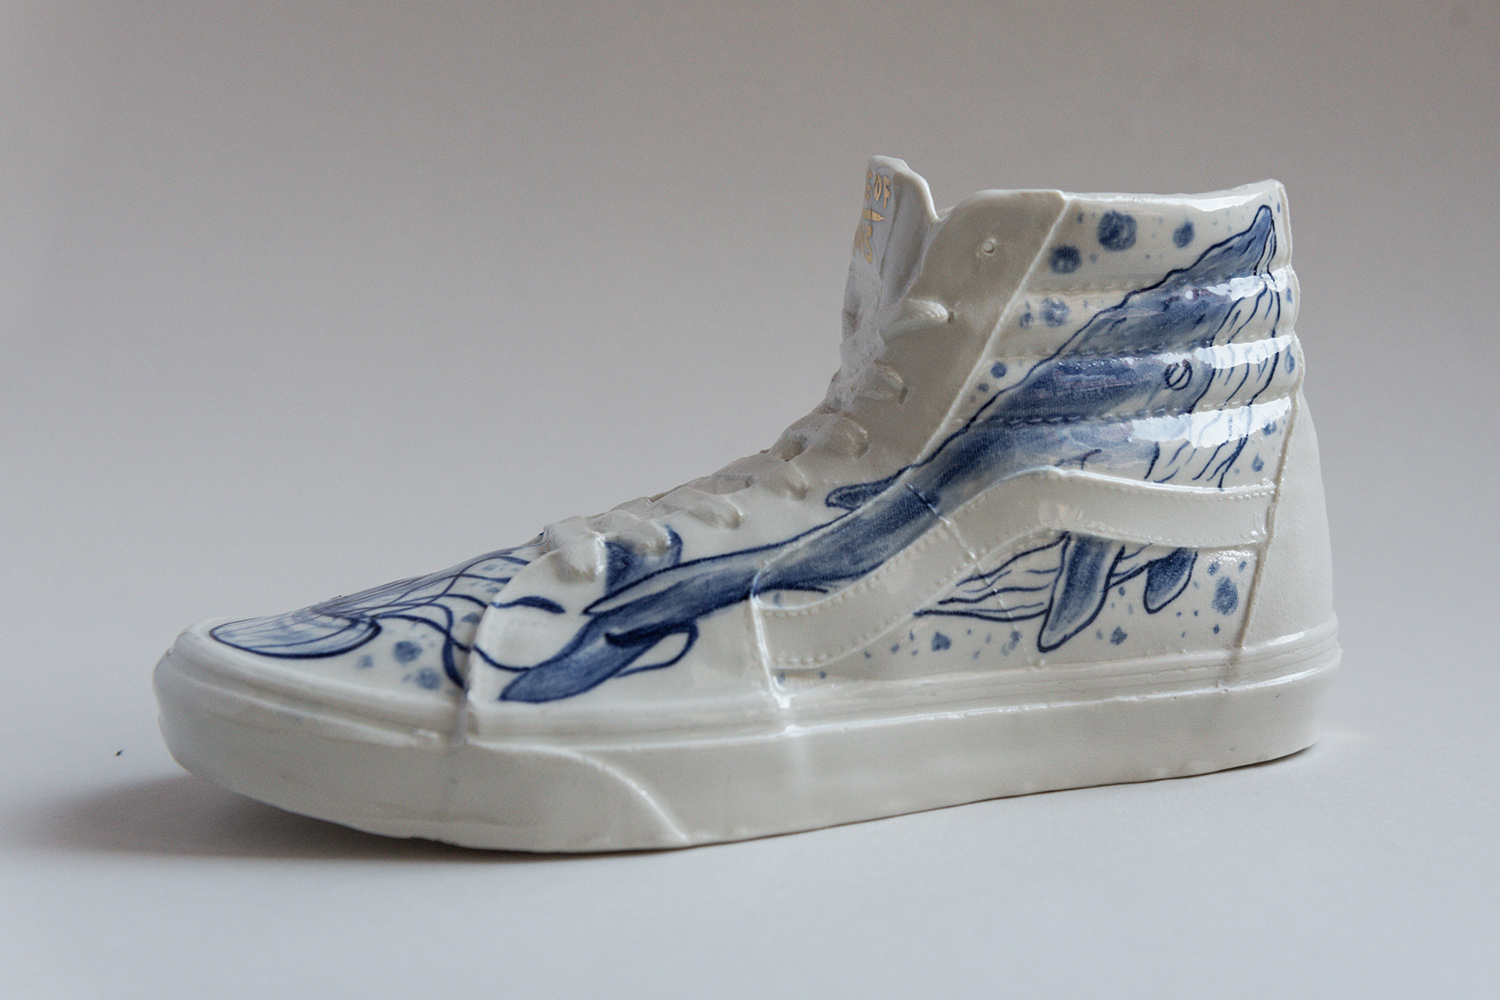 Vans skate shoe whale painted porcelain hand painted ceramic tattoo handmade Berlin art Marta ANtikapratika.jpg